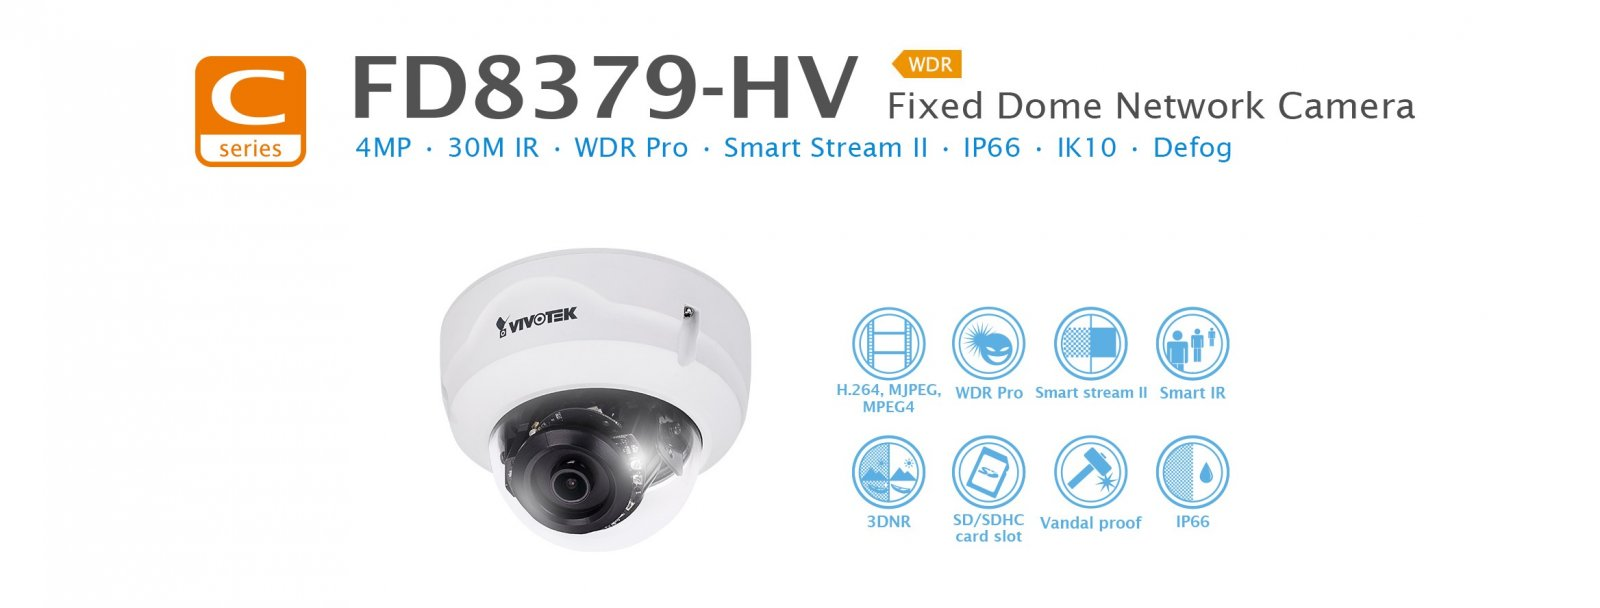 FD8379-HV. Vivotek Fixed Dome Network Camera